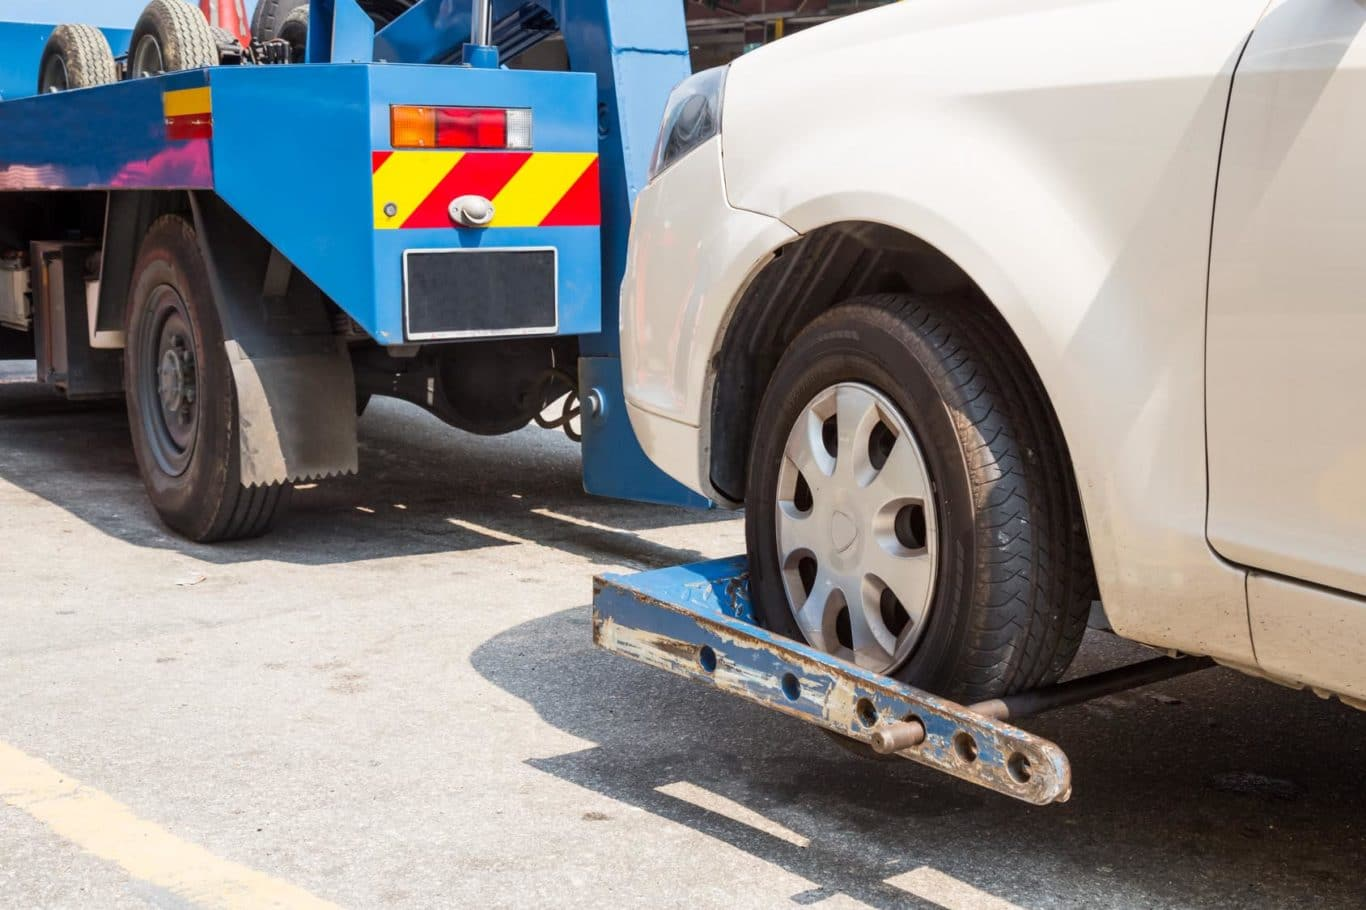 Rathfarnham expert Roadside Assistance services